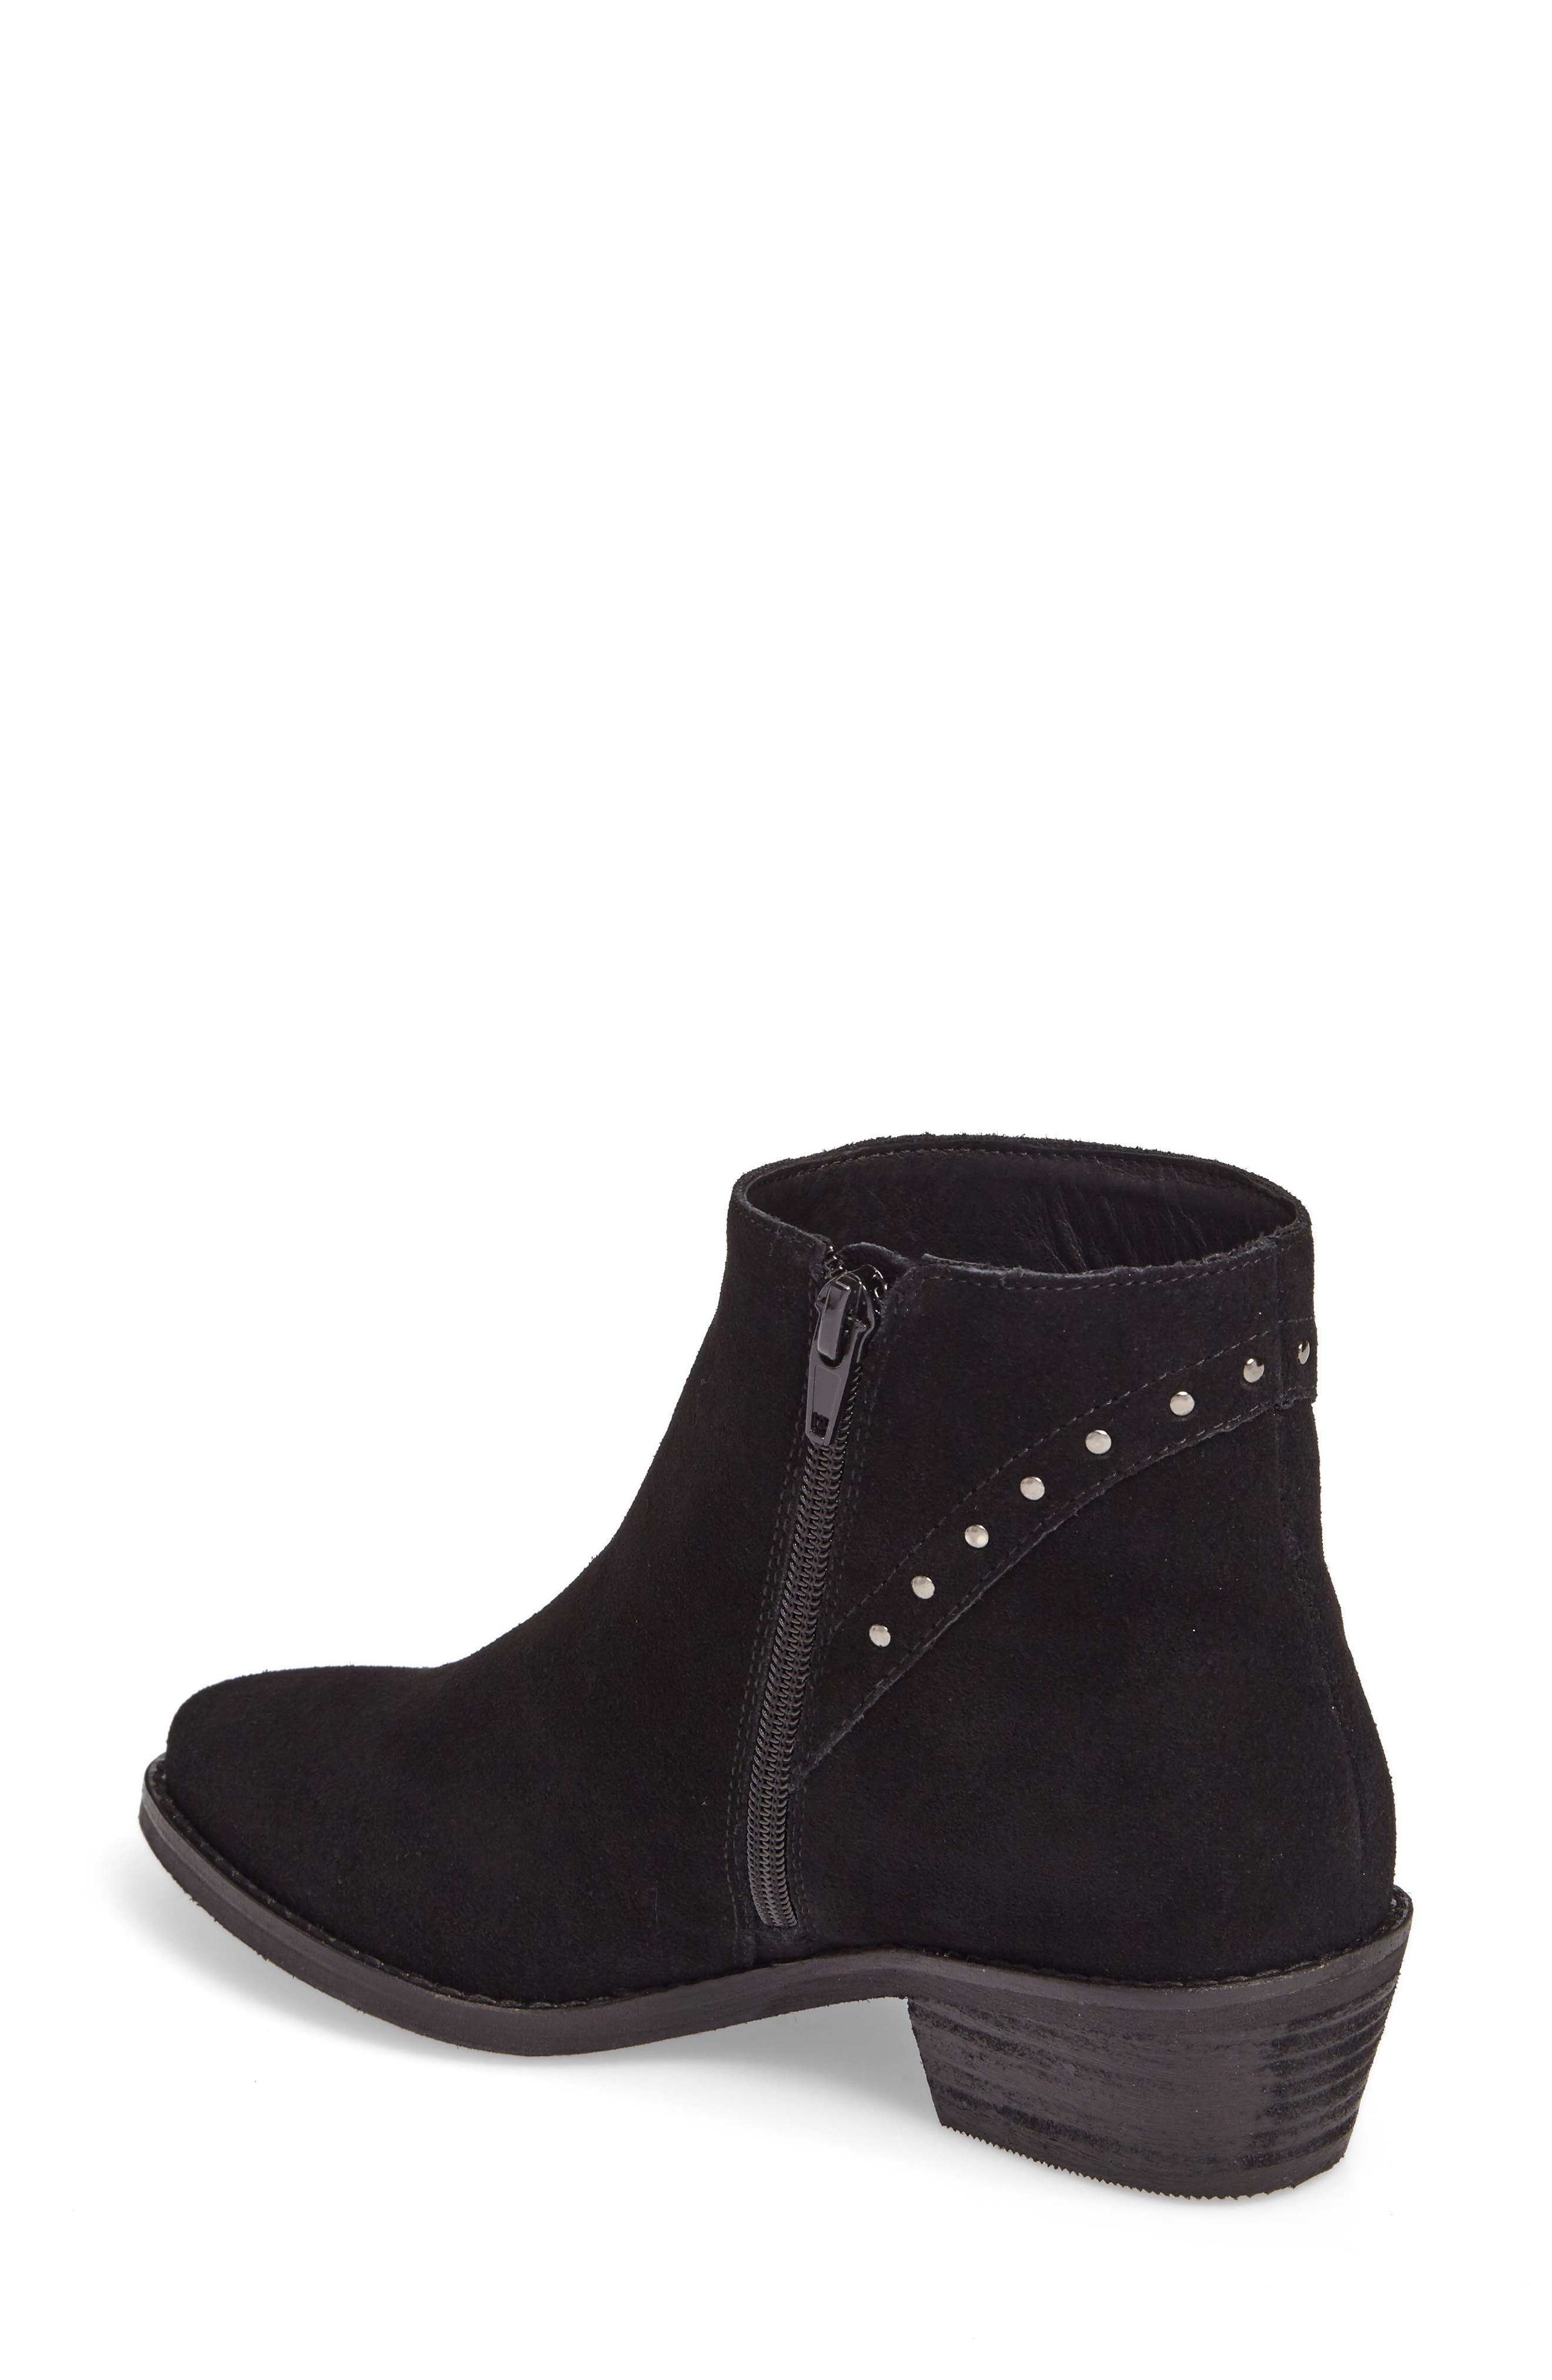 Irven Stud Bootie,                             Alternate thumbnail 2, color,                             001